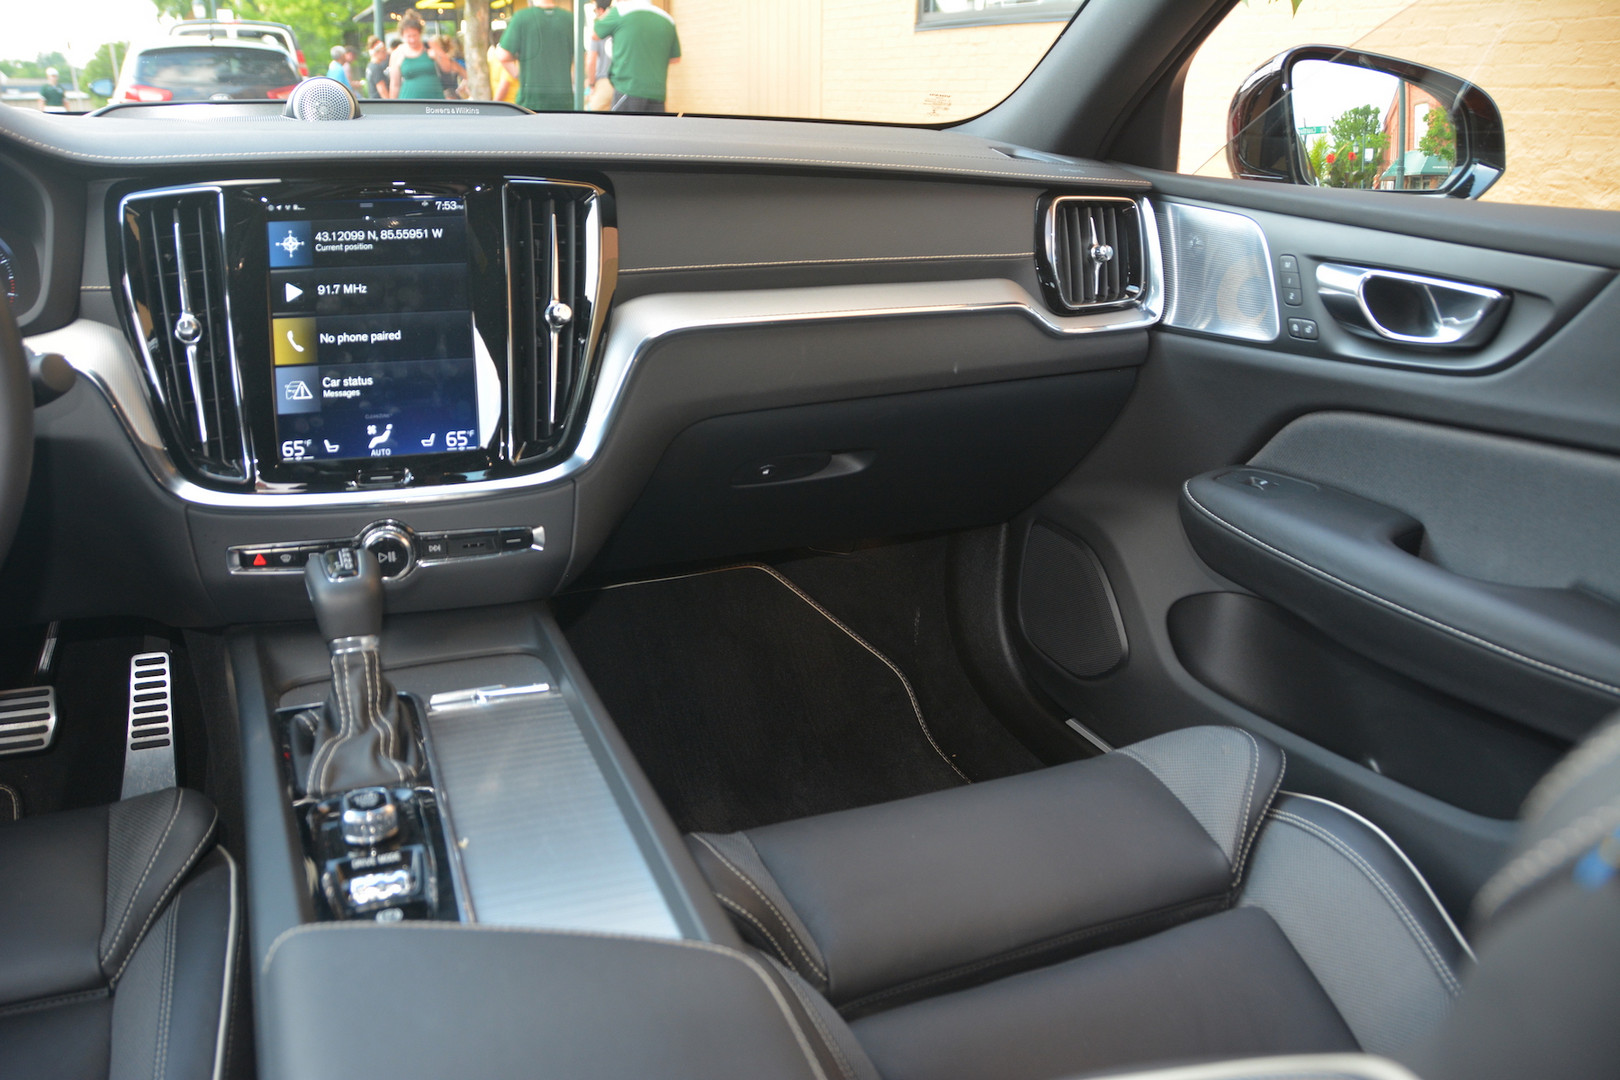 2019 Volvo S6 Display Screen